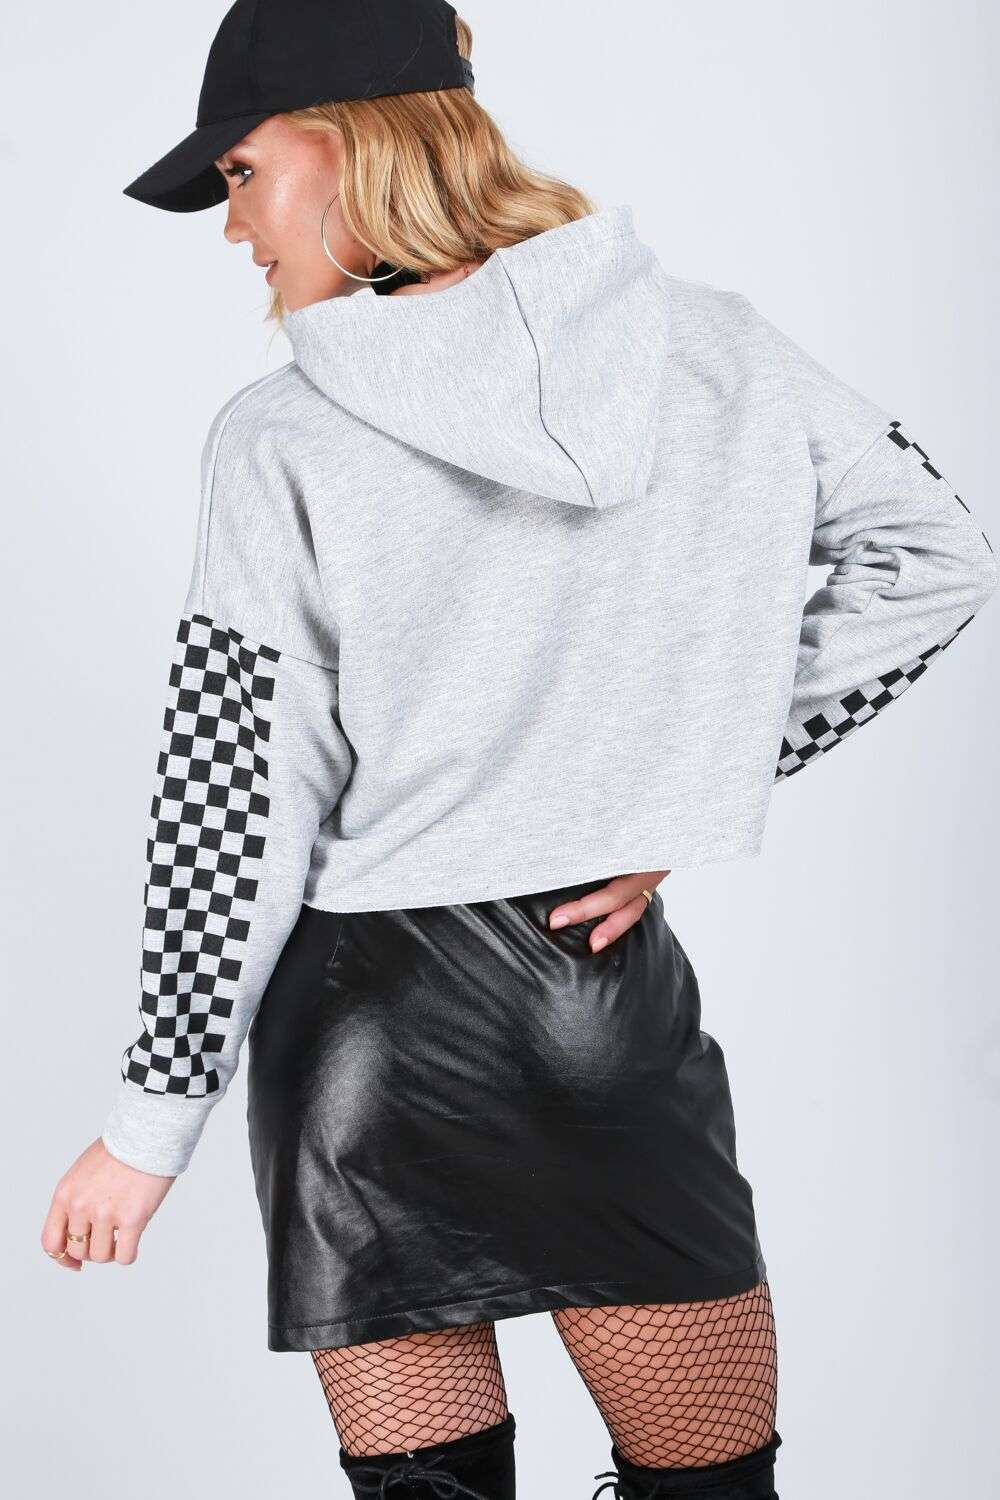 Freya Monochrome Cropped Hooded Sweater - bejealous-com